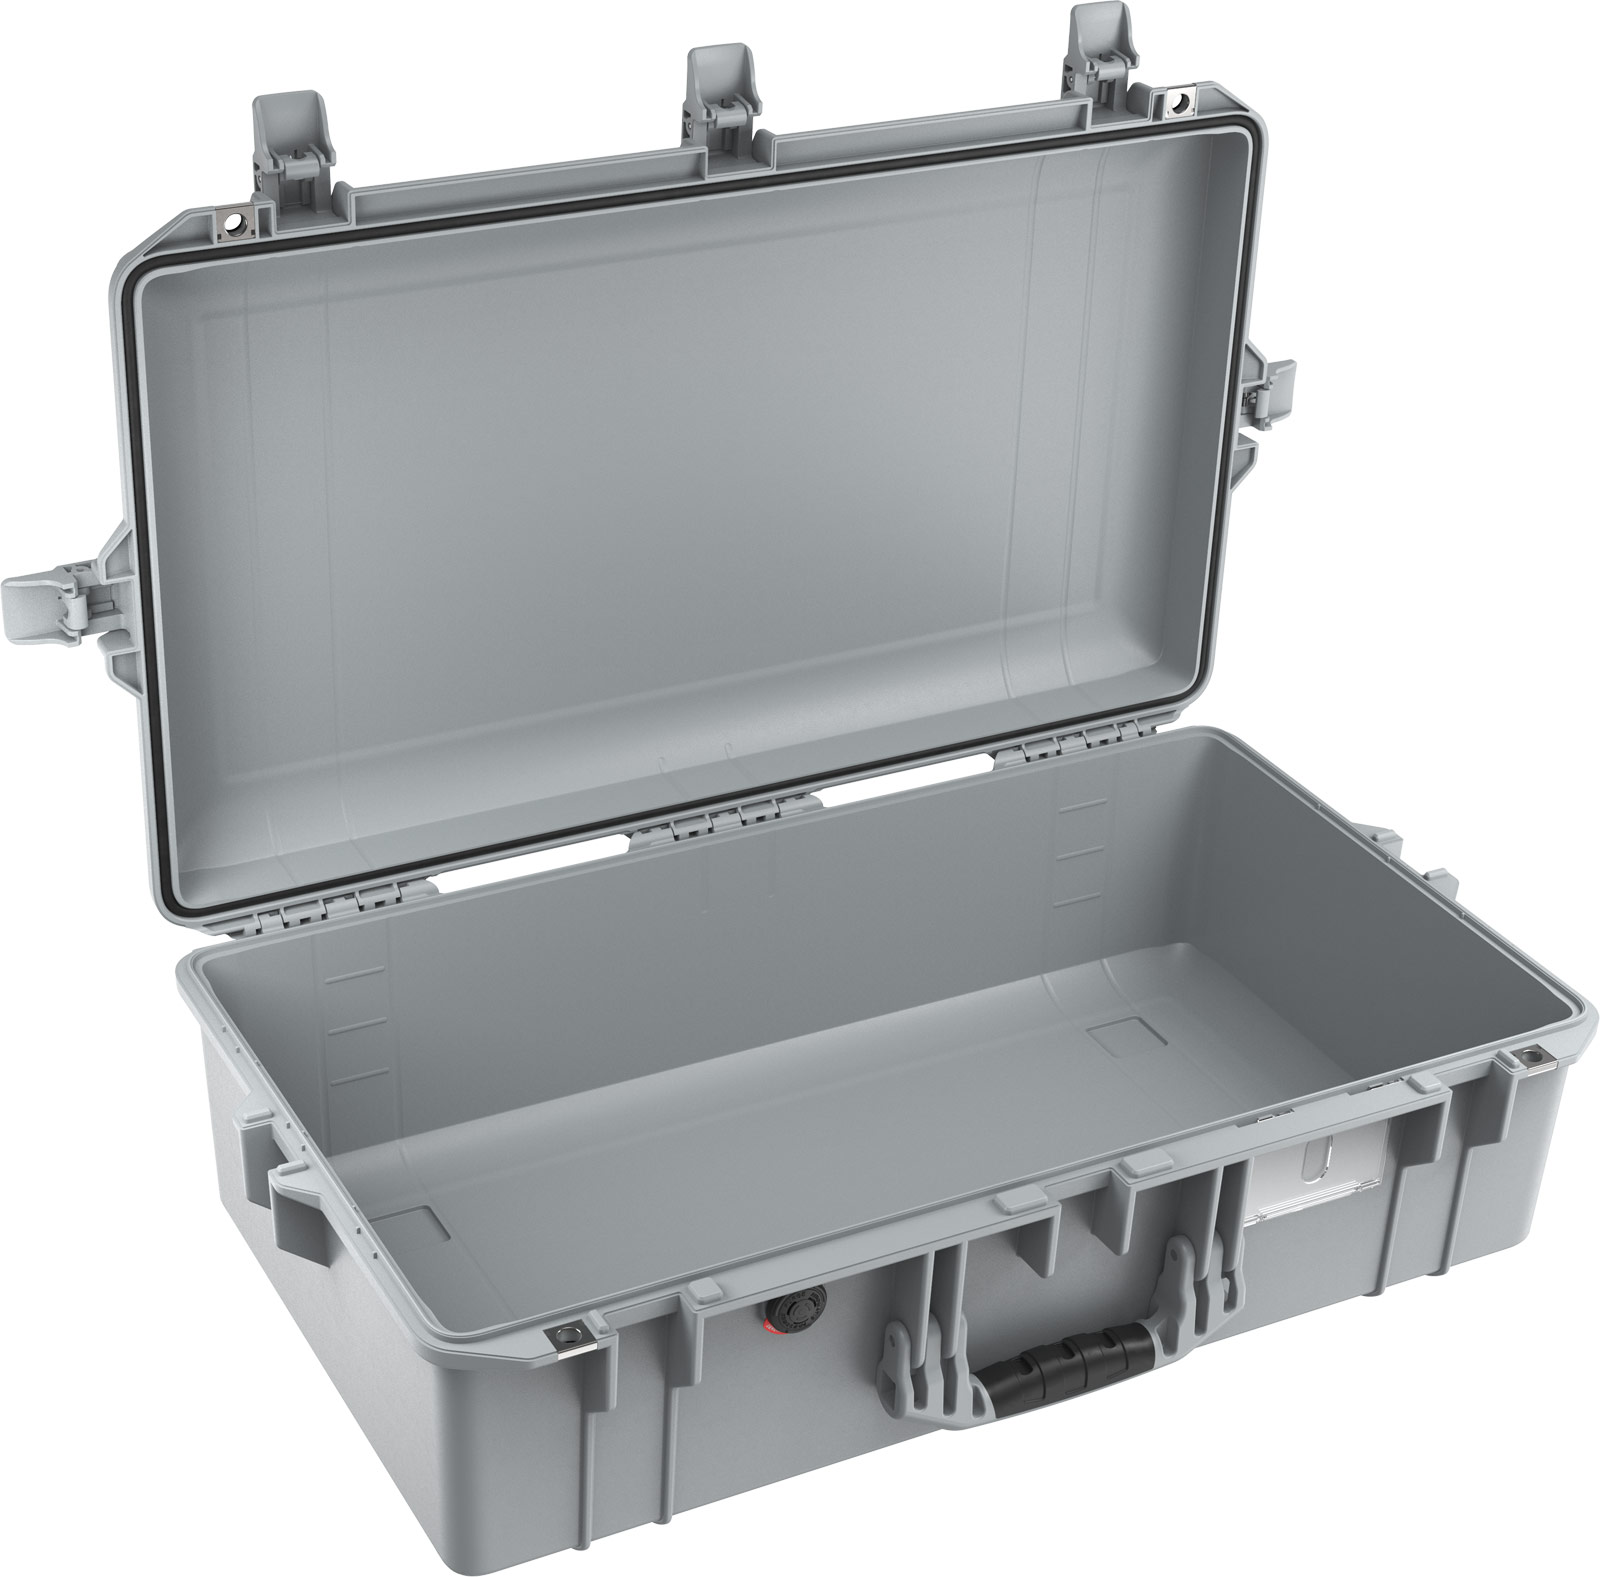 buy pelican air 1605 shop silver camera case